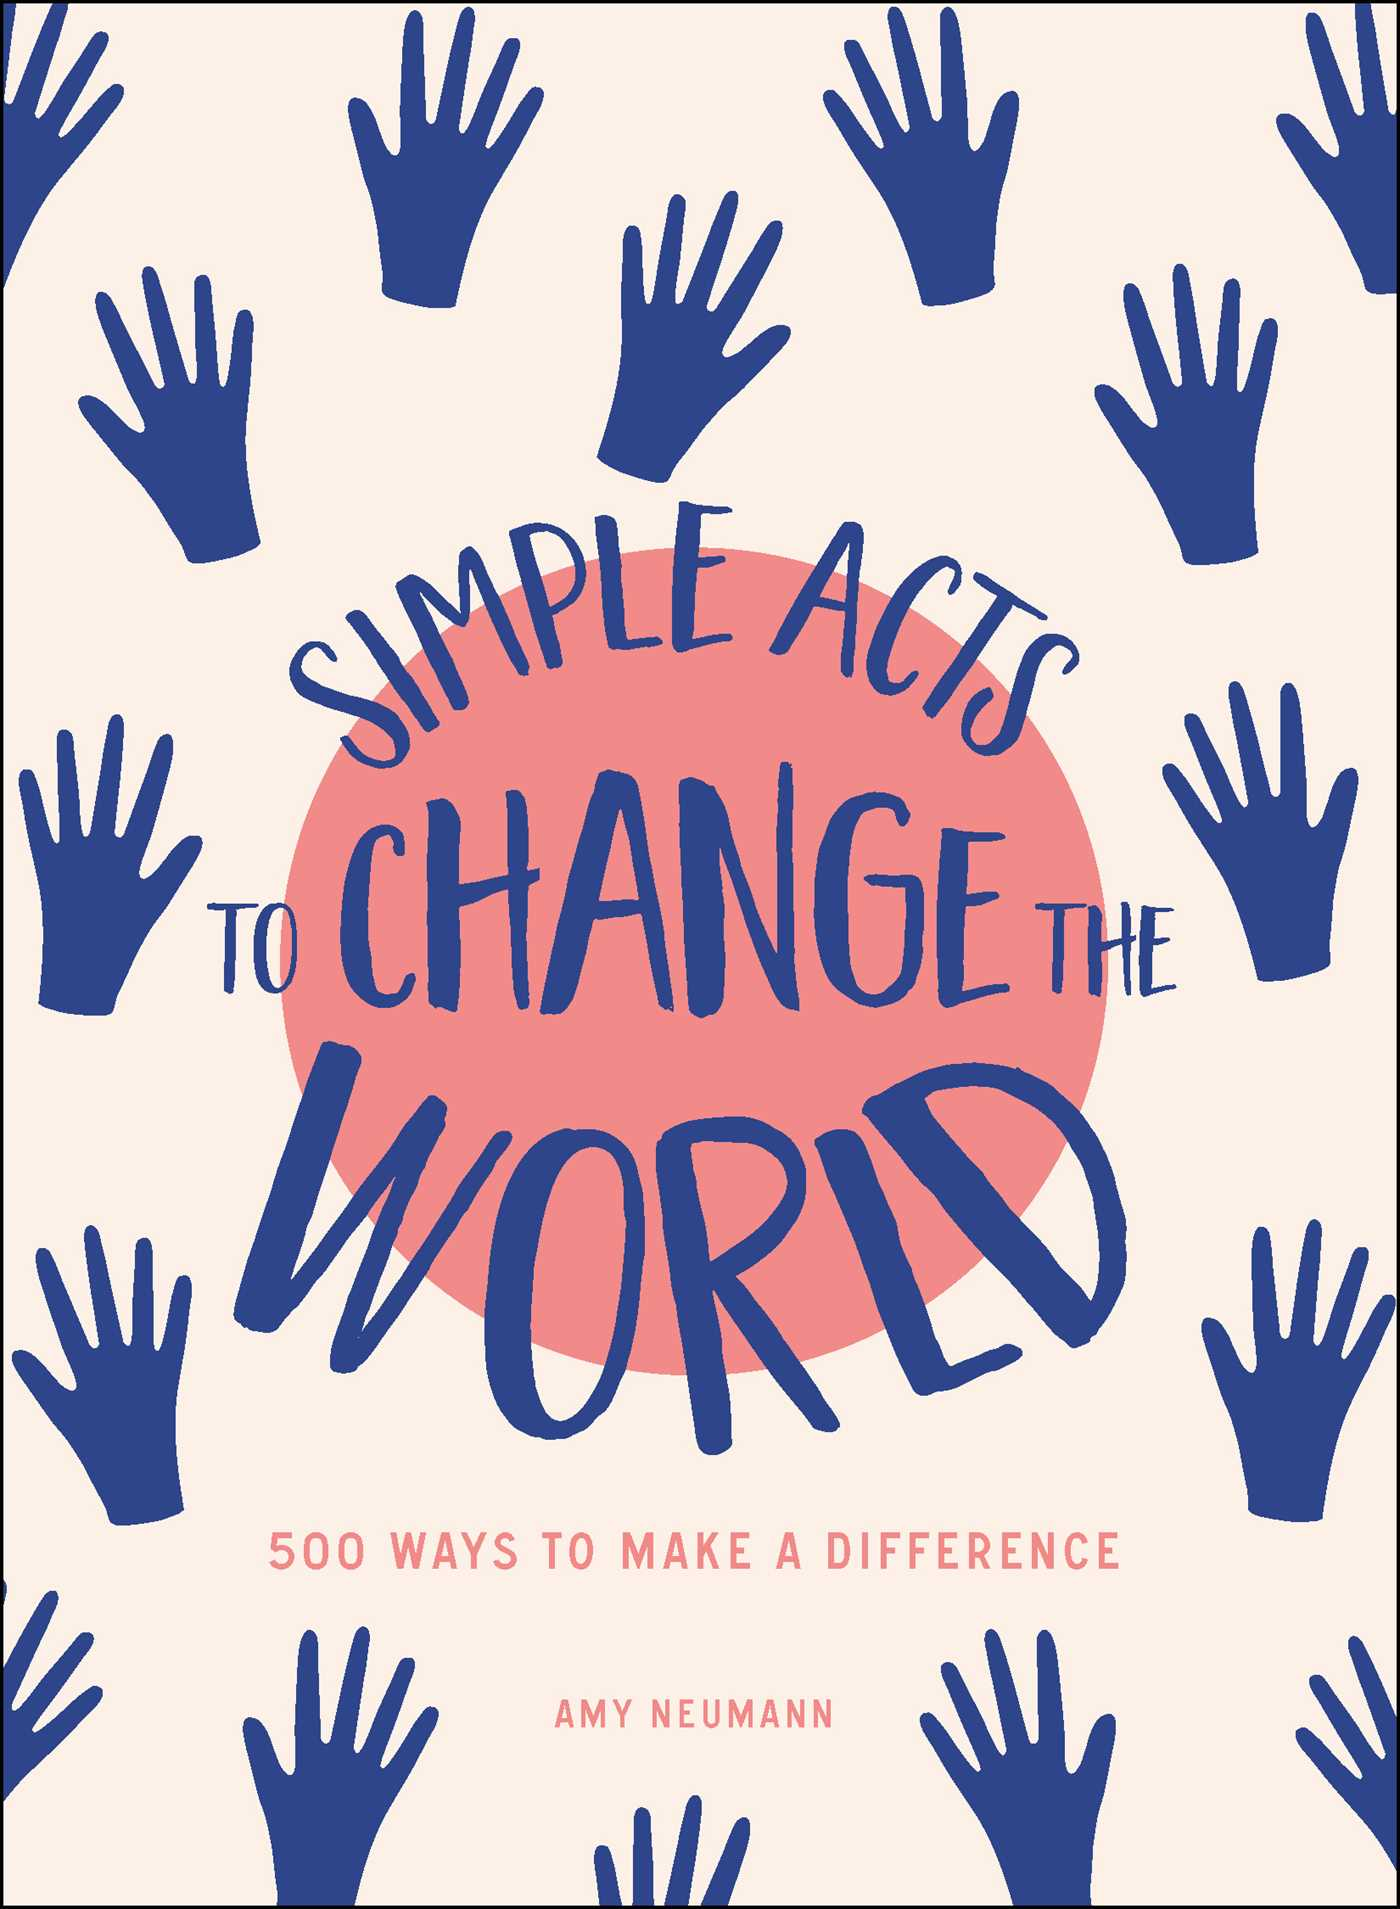 Simple acts to change the world 9781507208960 hr